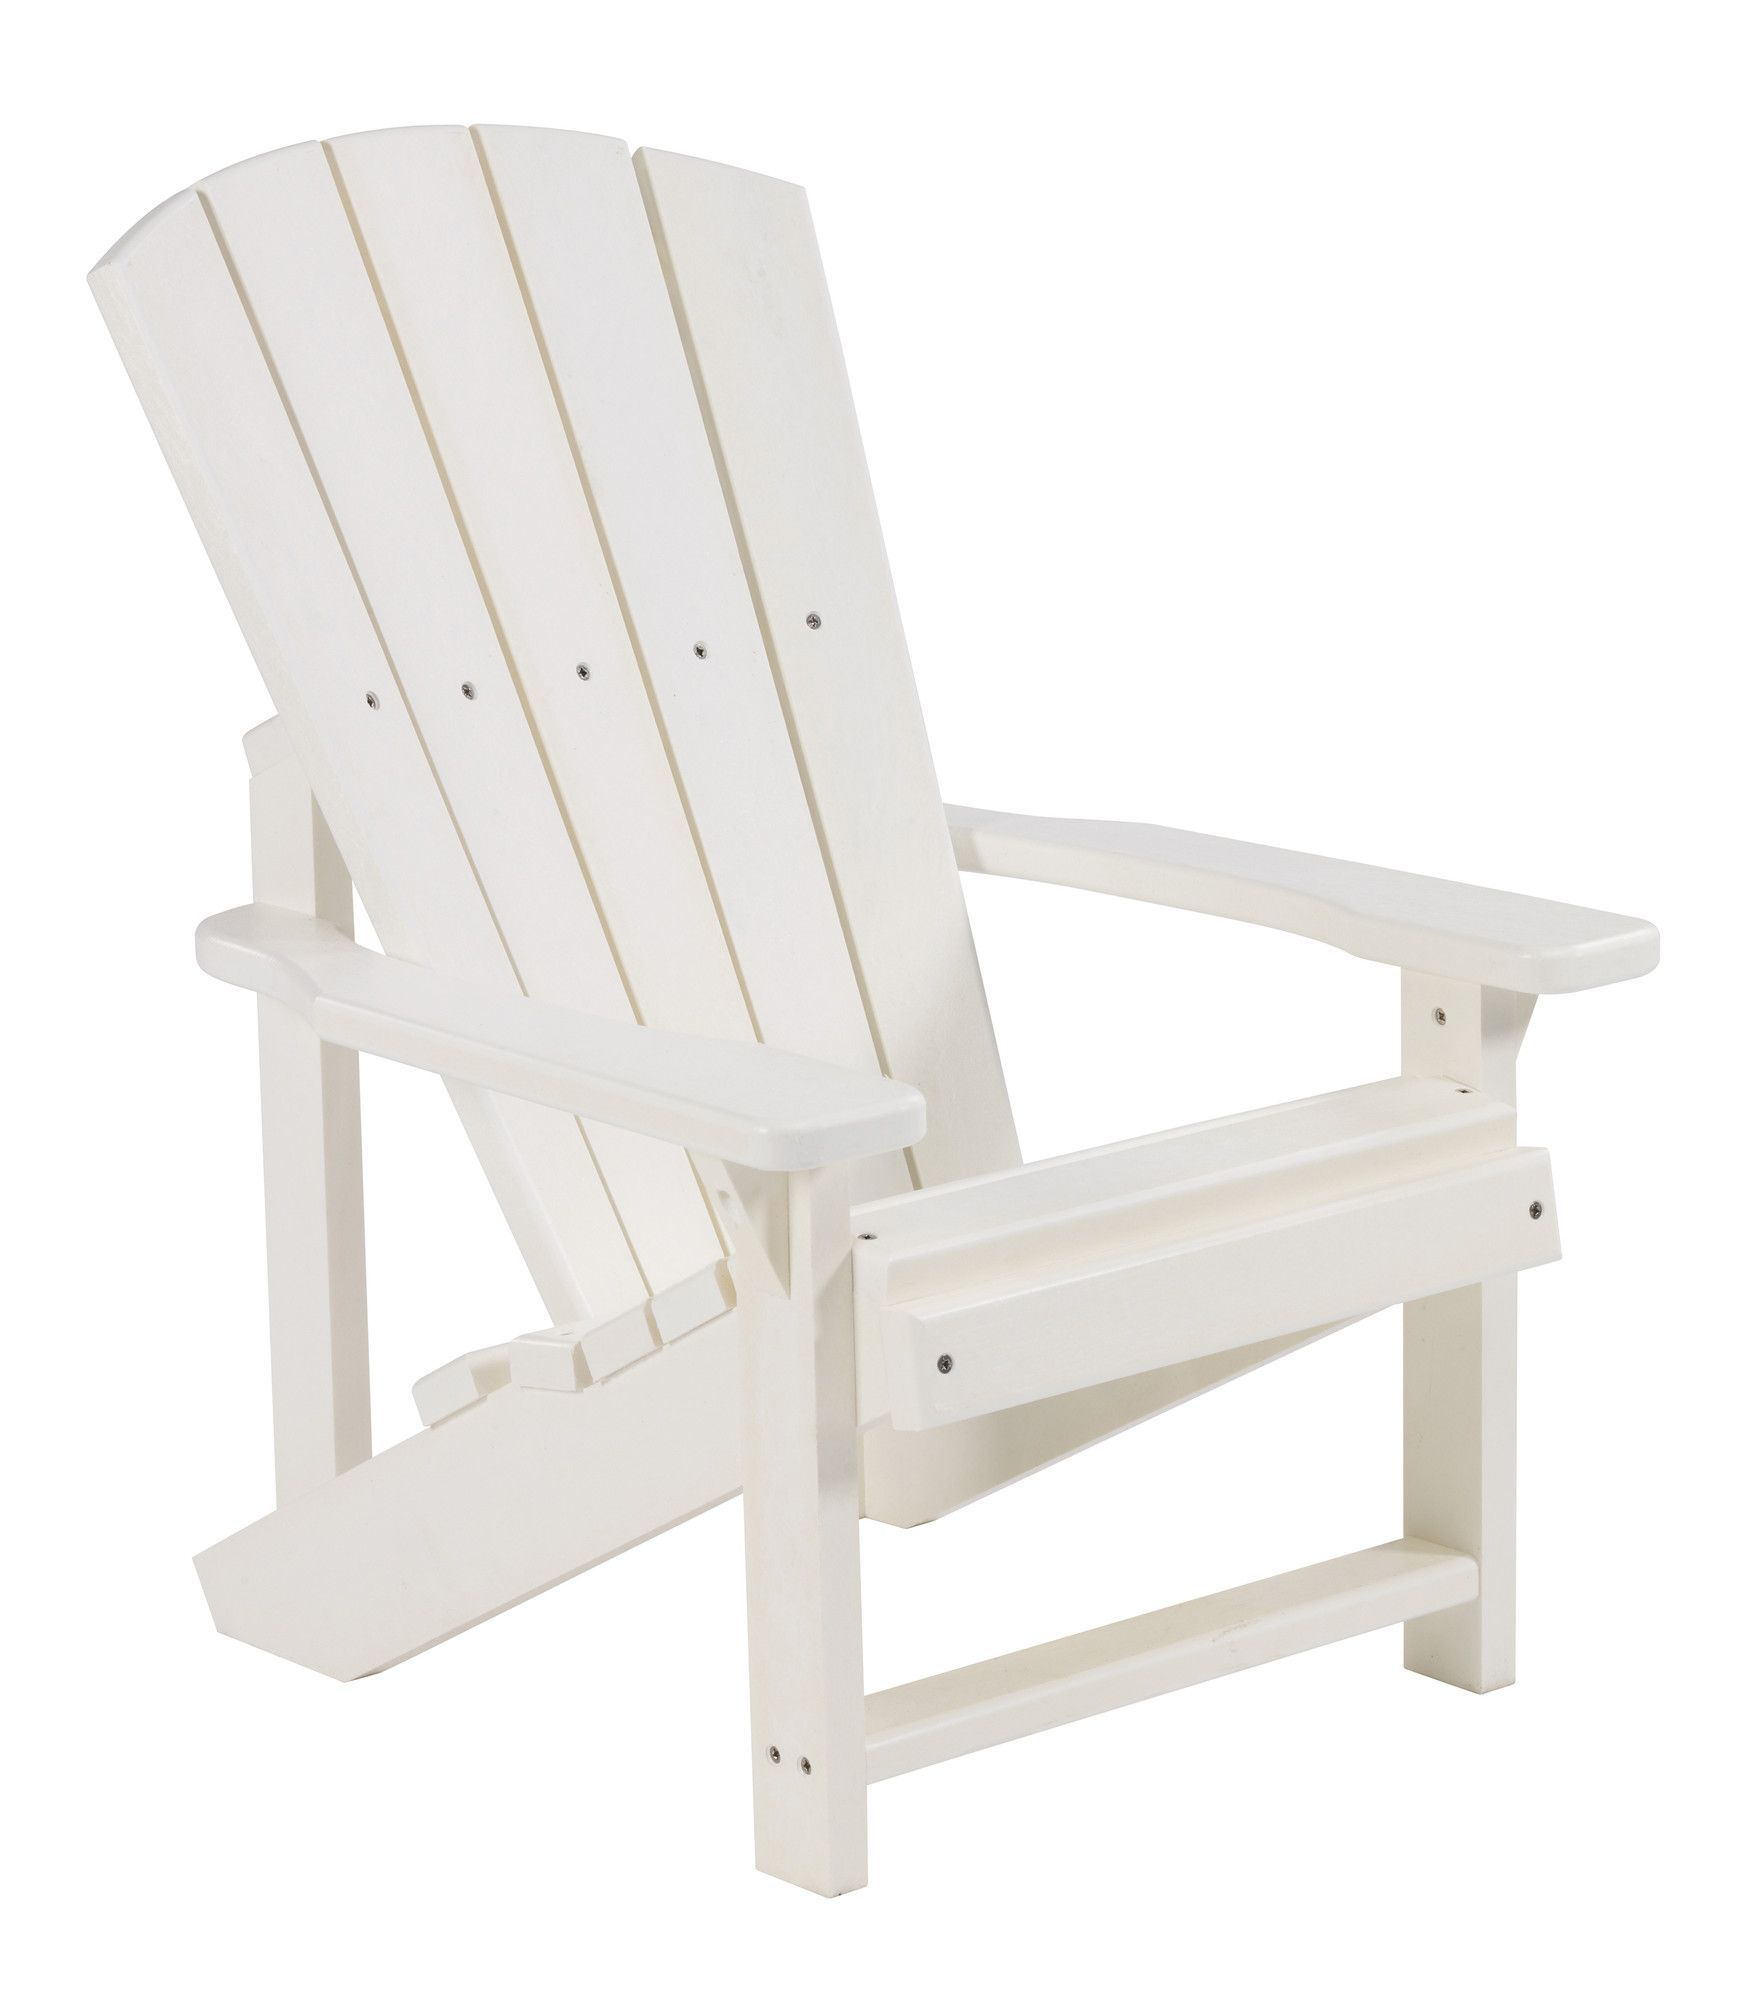 Generations Kids Adirondack Chair Products Pinterest